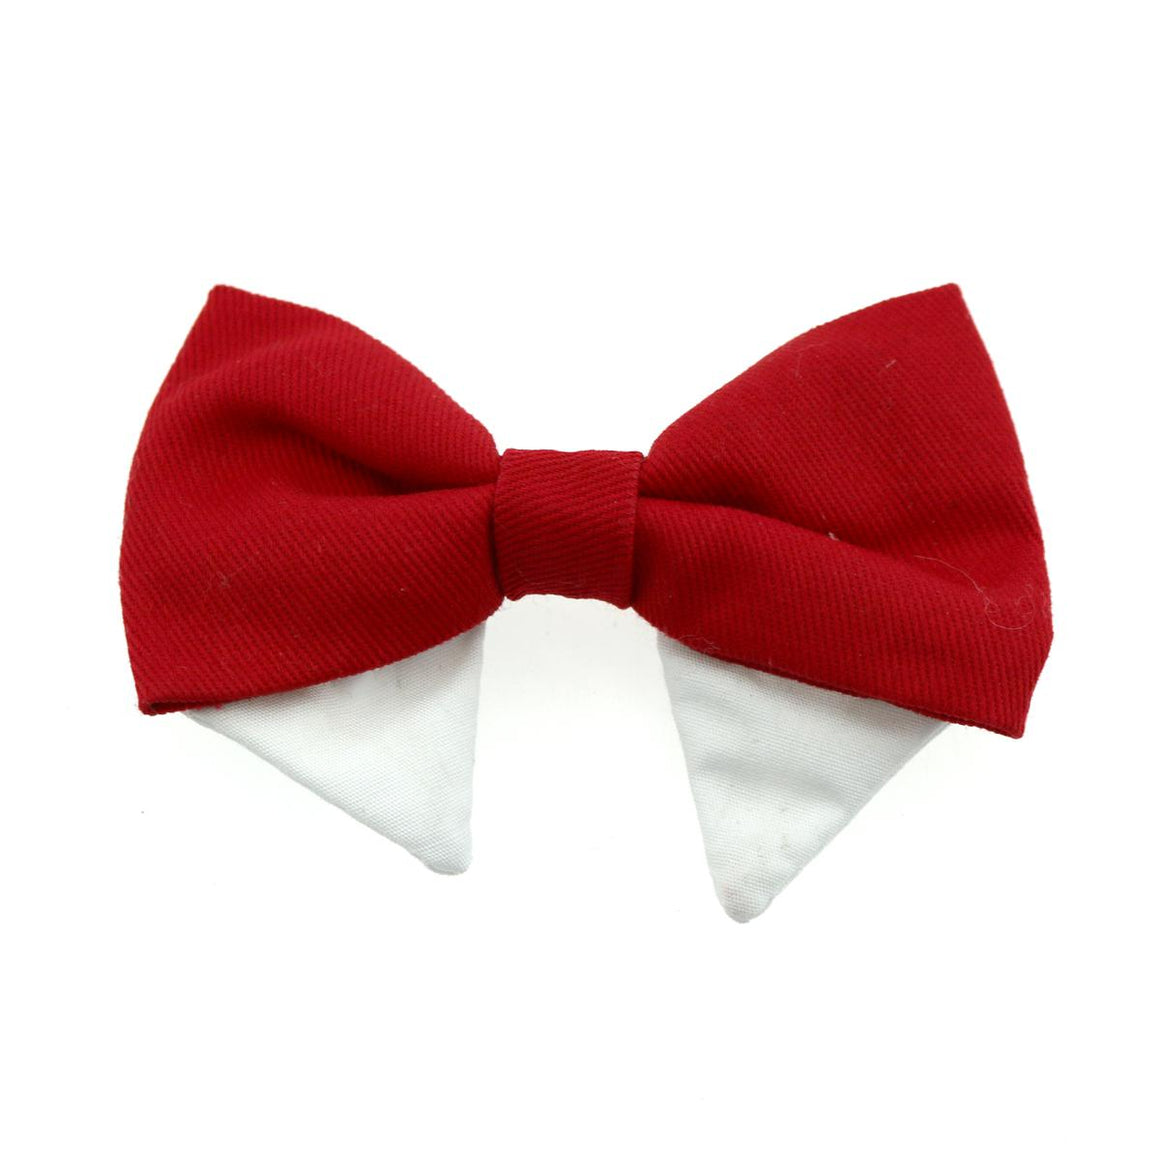 Doggie Design Universal Dog Bow Tie - Solid Red-Le Pup Pet Supplies and Grooming